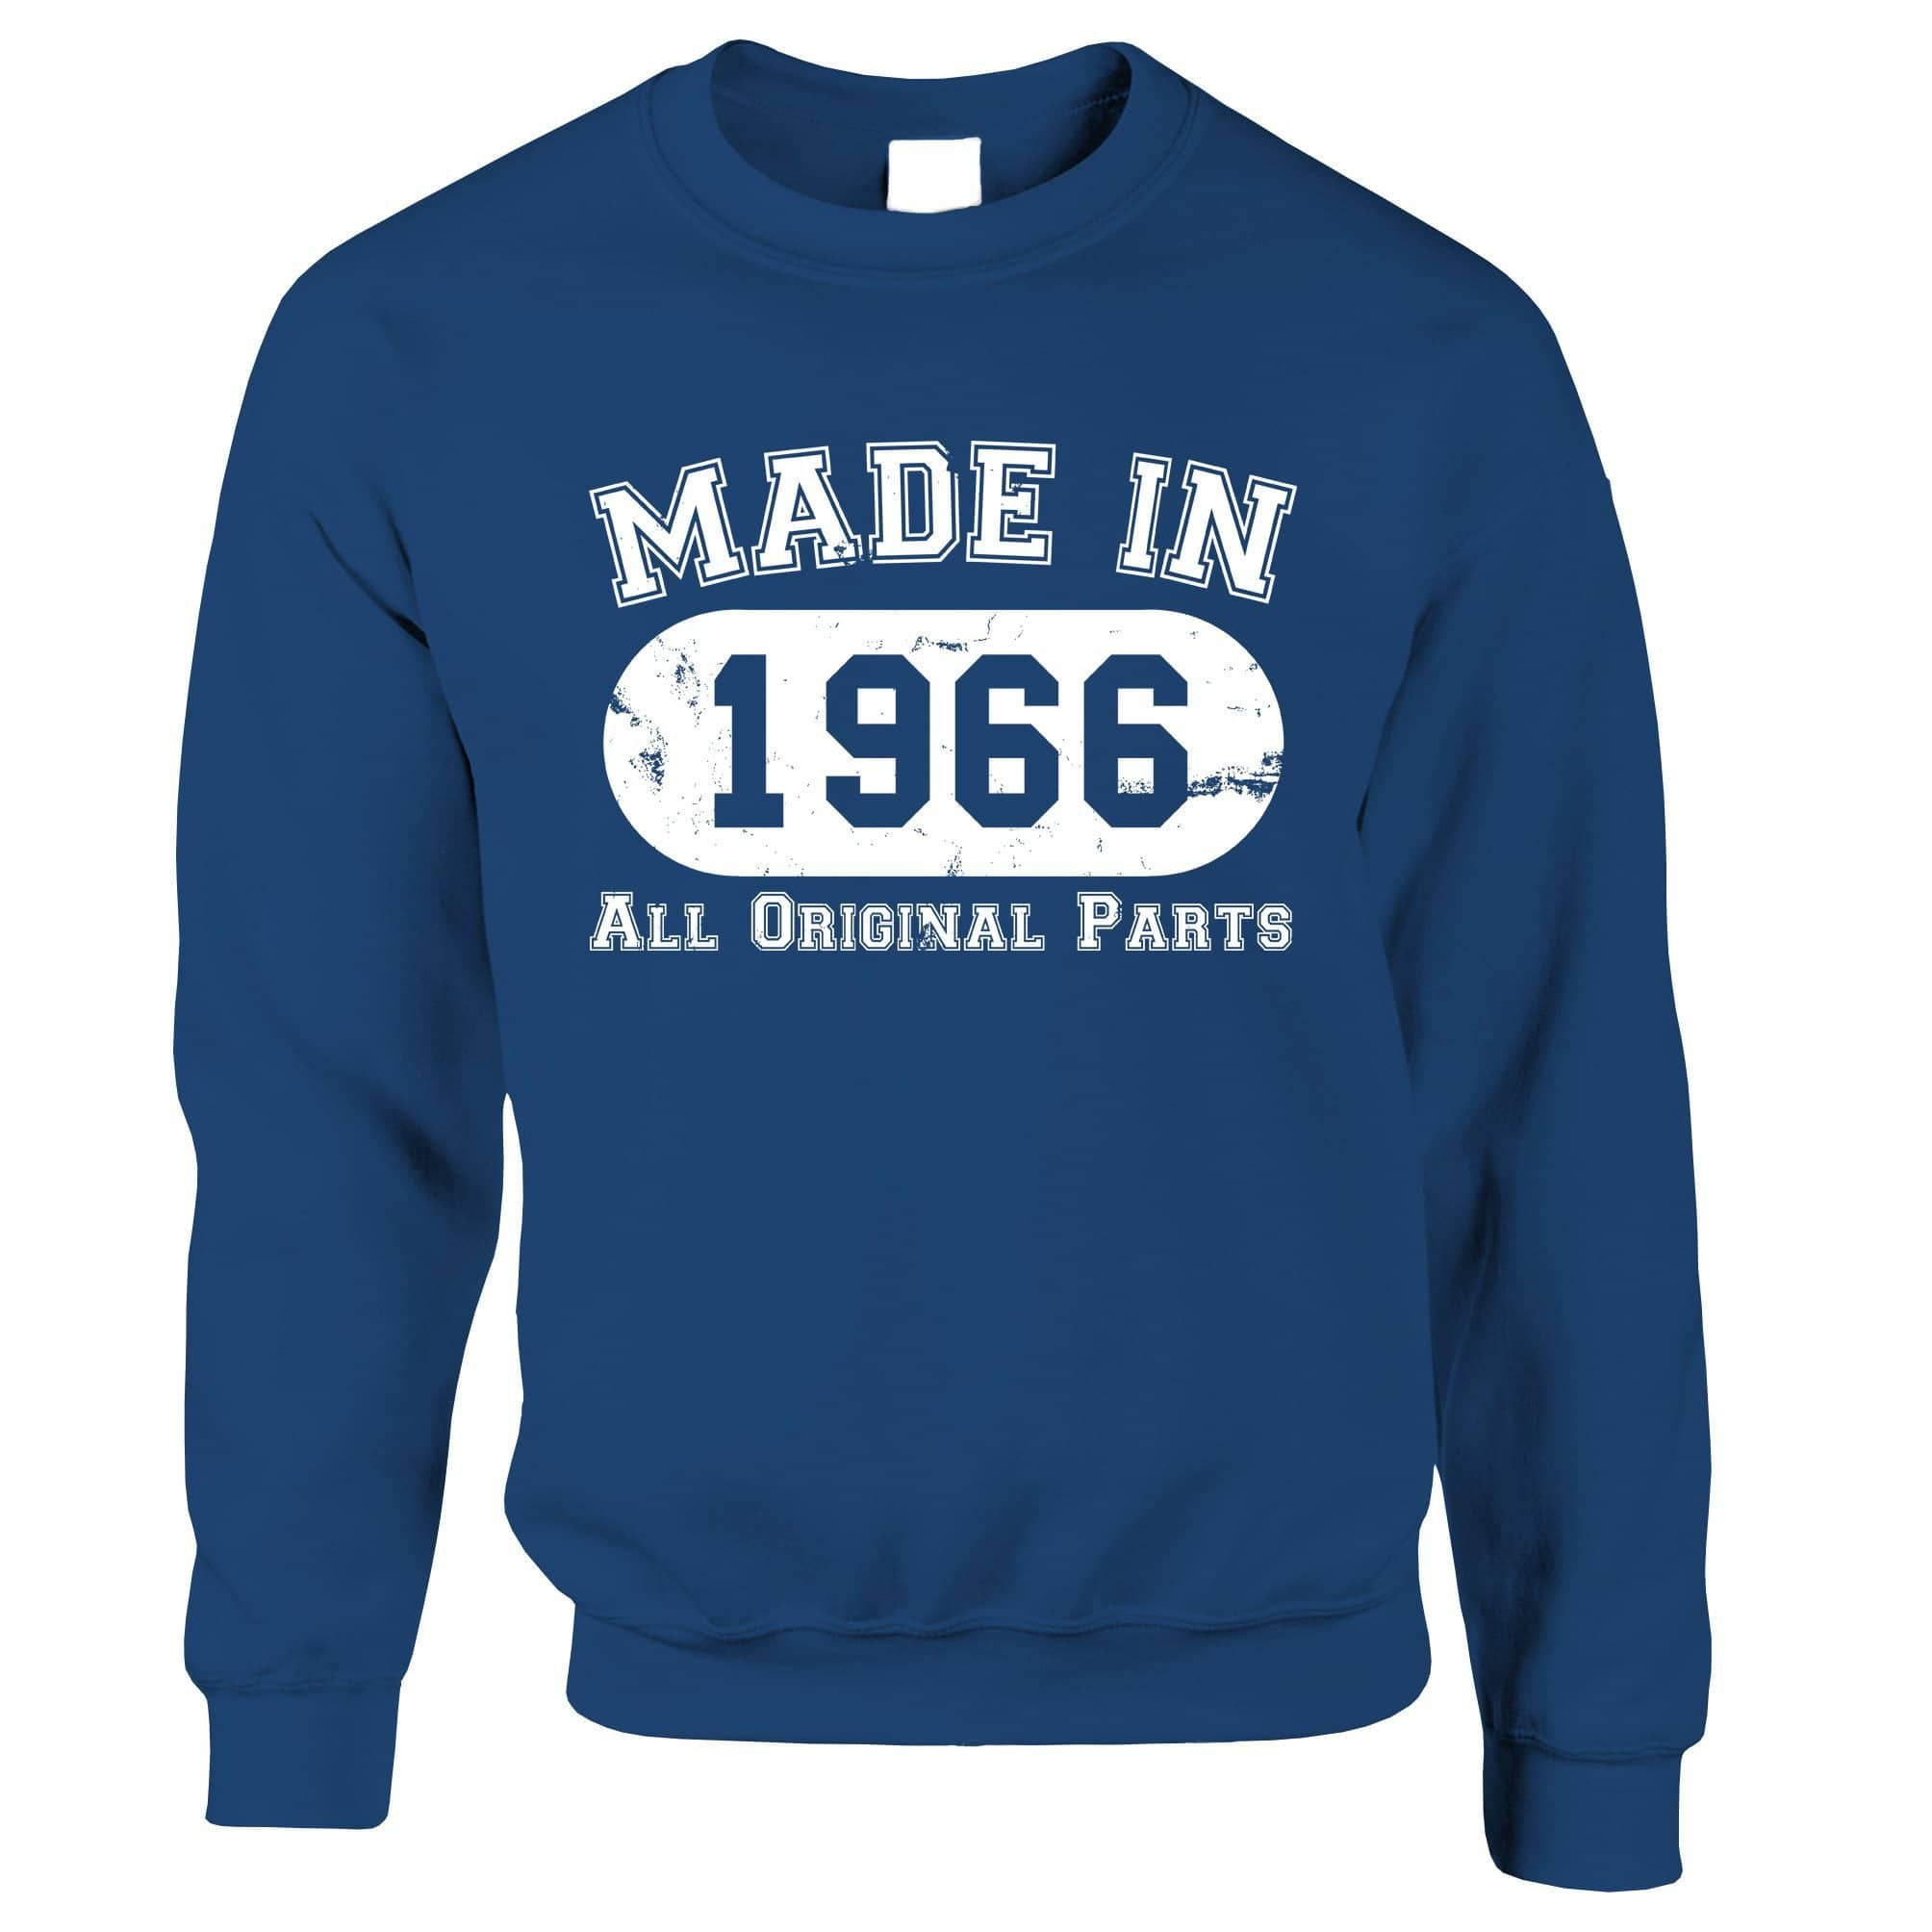 Made in 1966 All Original Parts Sweatshirt Jumper [Distressed]